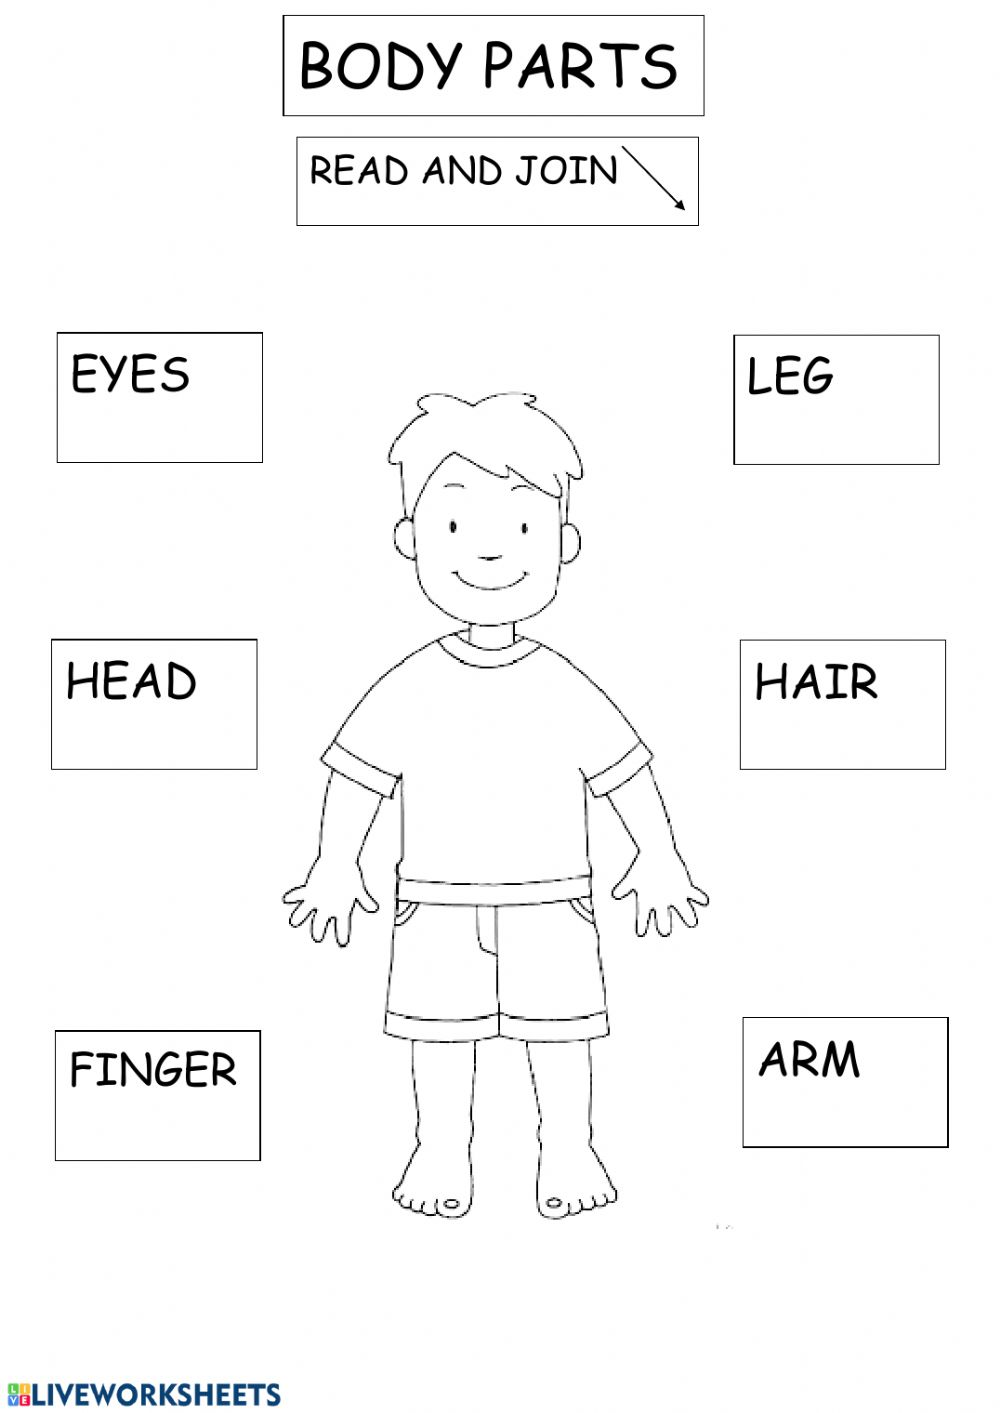 hight resolution of Body parts exercise for 2ND GRADE